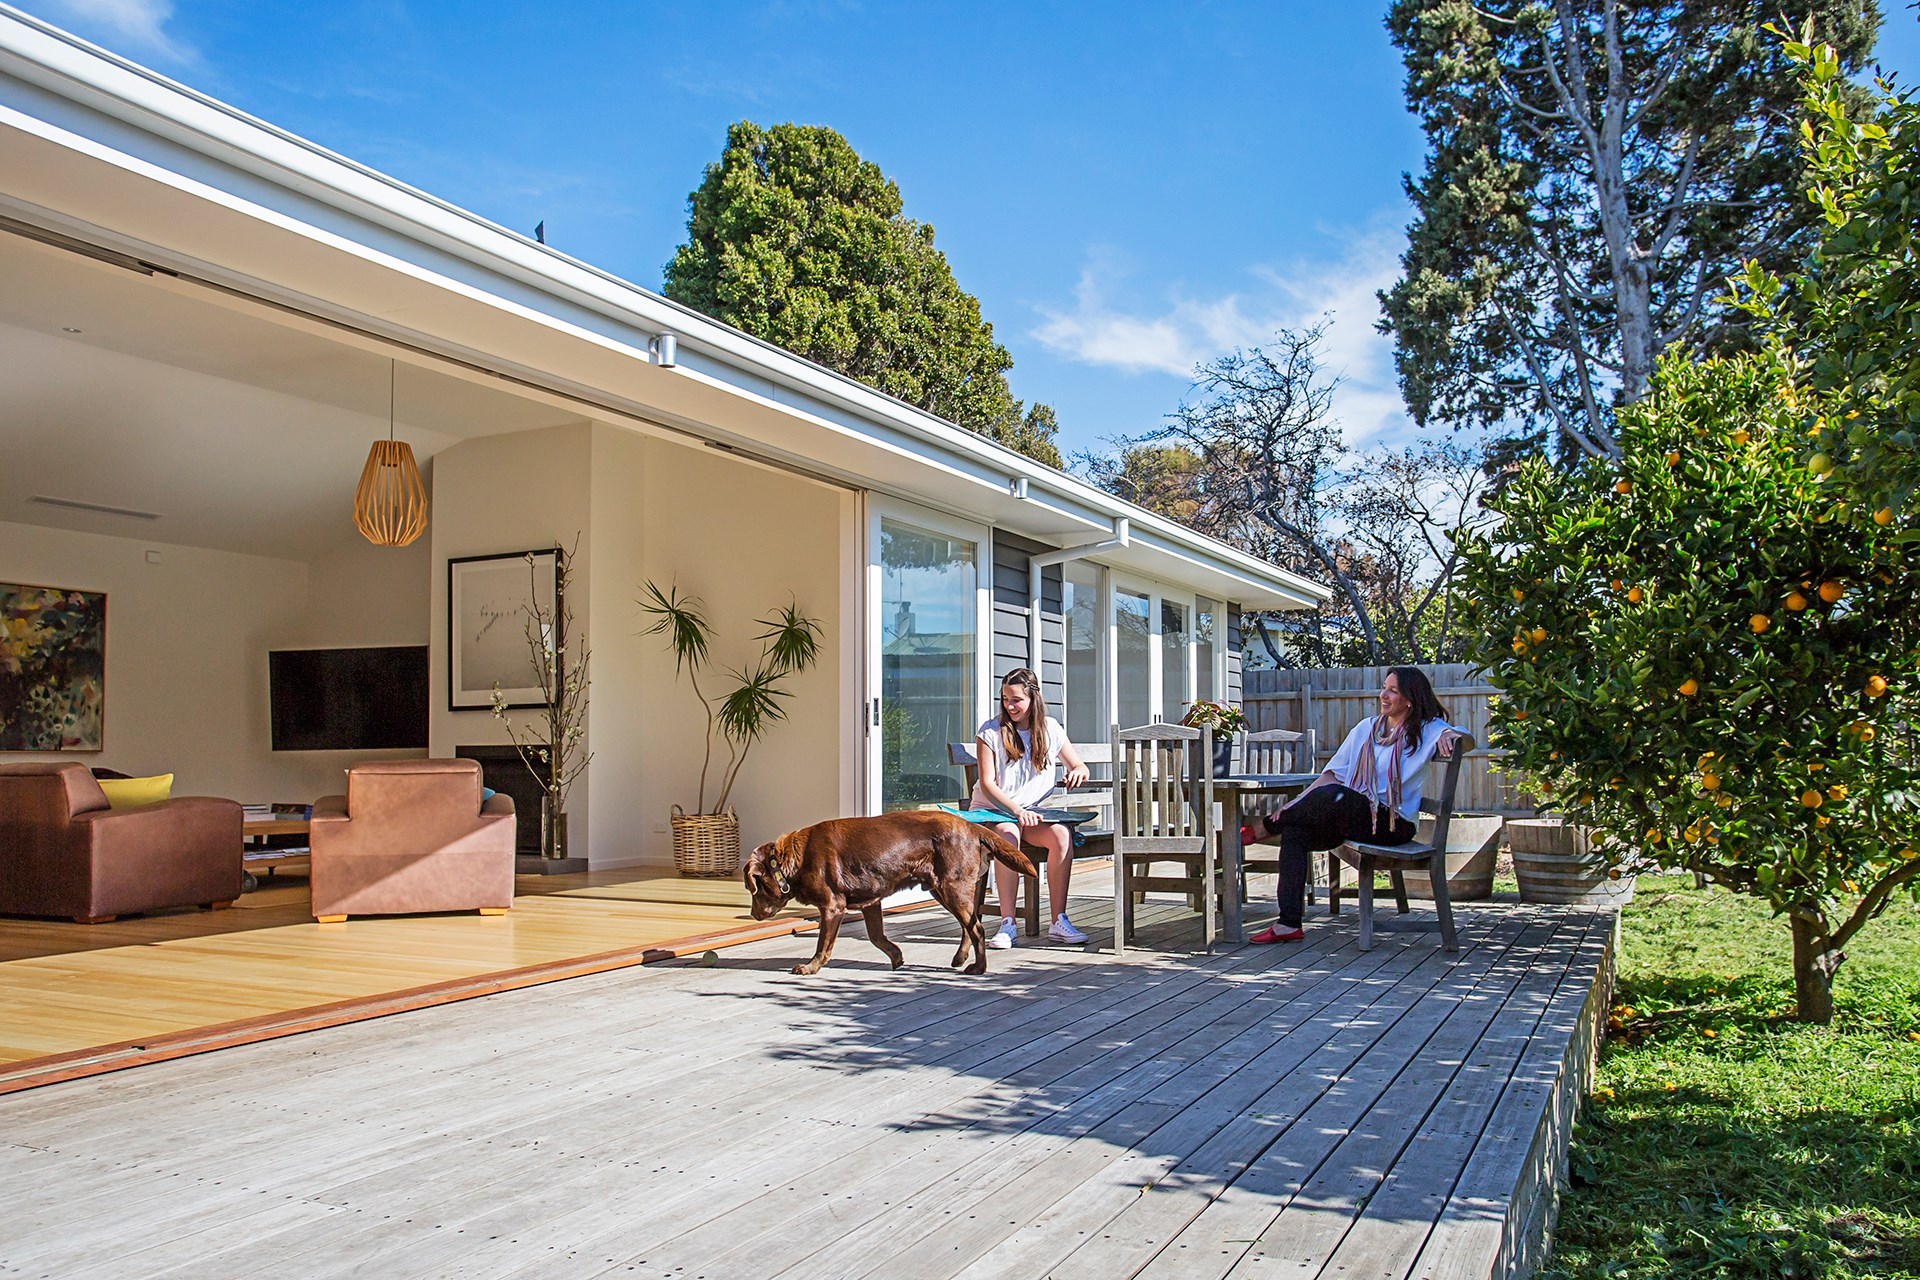 "**Strive for a seamless indoor-outdoor connection** – this means no level changes. The easier it is to get outside, the more your backyard will feel like another room in the house. [Take a tour of this family beach house](http://www.homestolove.com.au/beach-house-transformed-to-suit-next-generation-2807|target=""_blank""). *Photo: Katherine Jamison*"